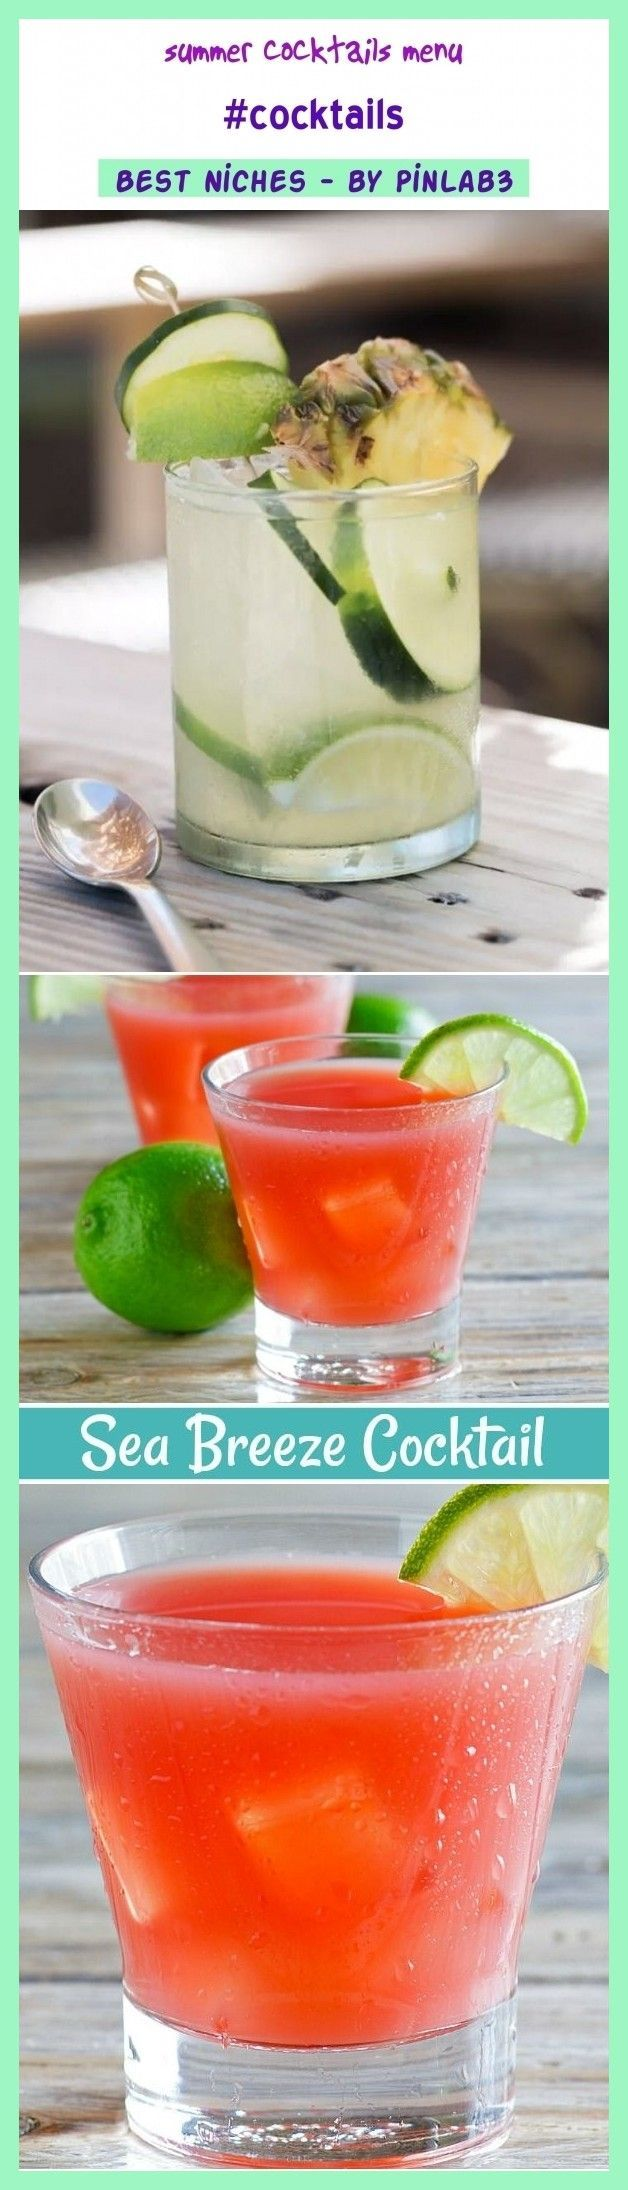 Memorize These 5 Ridiculously Simple 3 Ingredient Pitcher Cocktails Pitcher Cocktails Summer Drinks Alcohol Recipes Vodka Pitcher